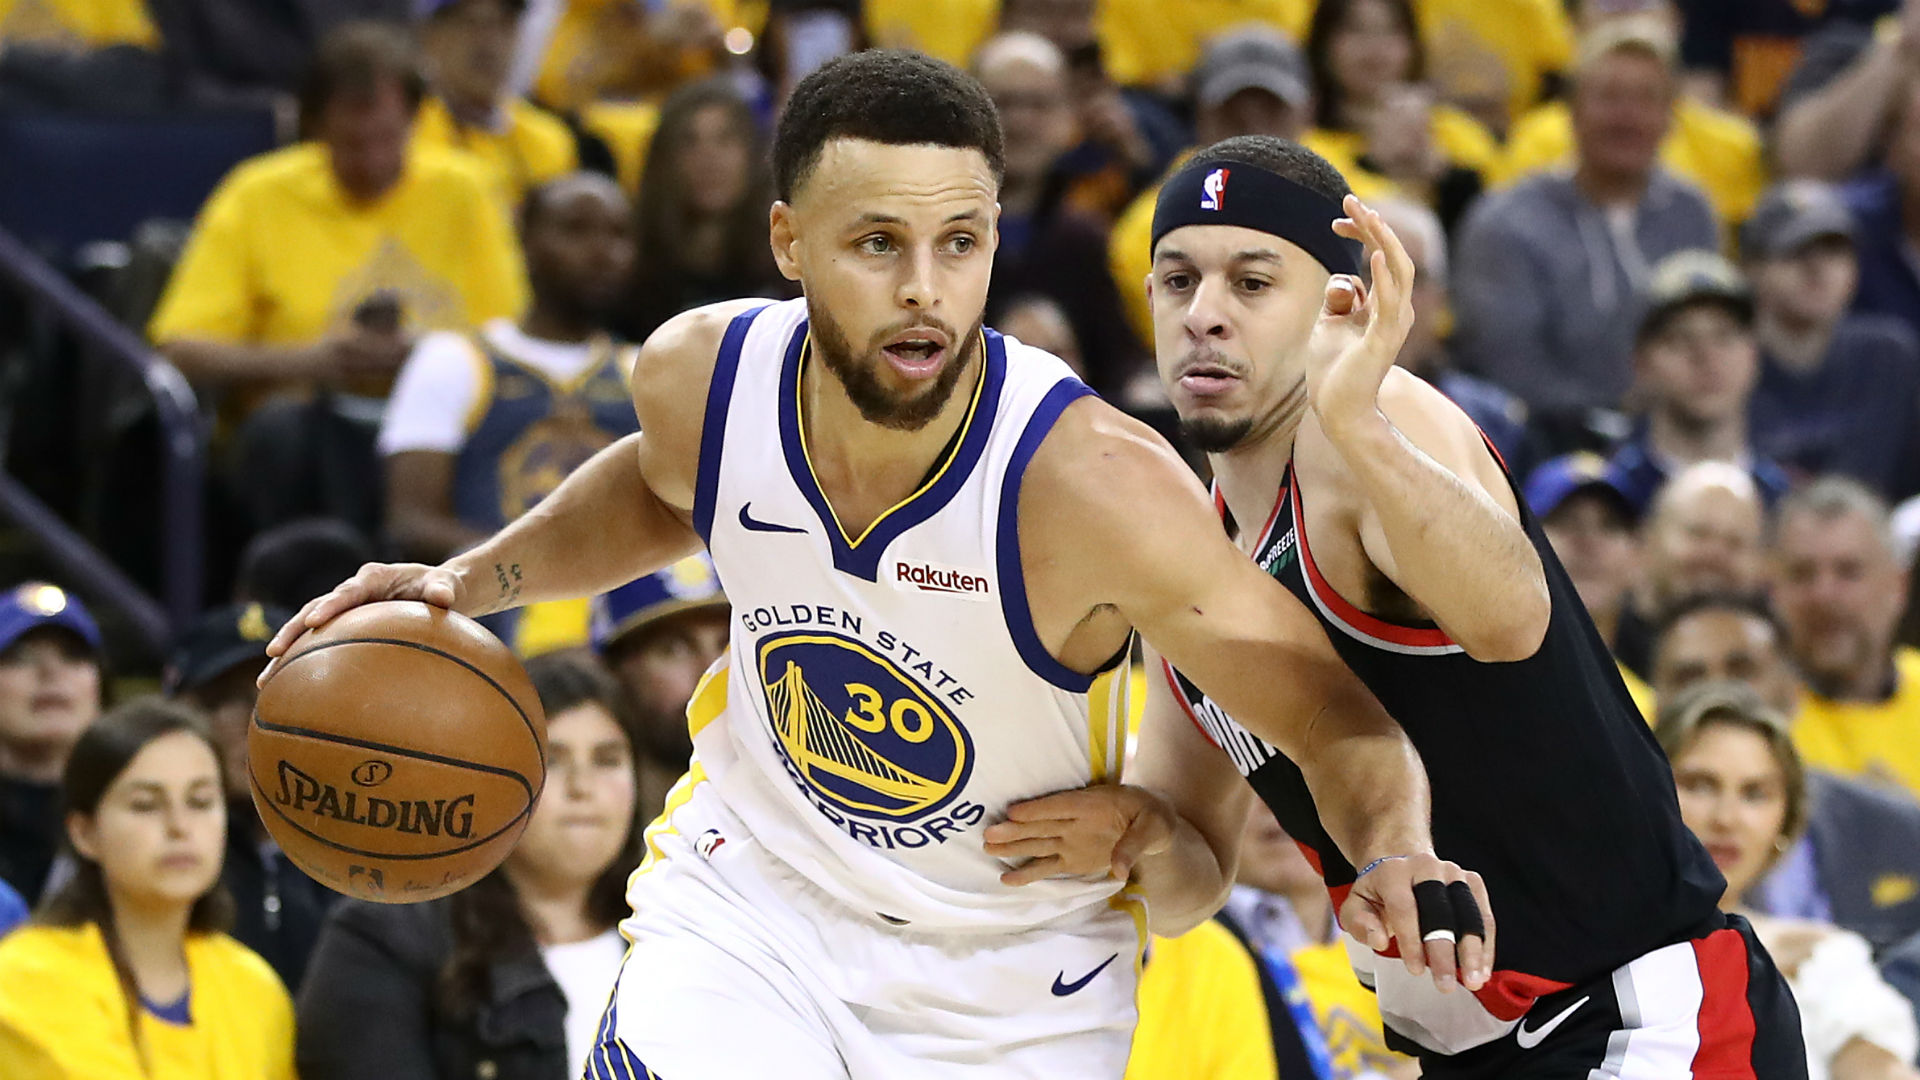 Stephen Curry led the Golden State Warriors to a comfortable win over the Portland Trail Blazers.